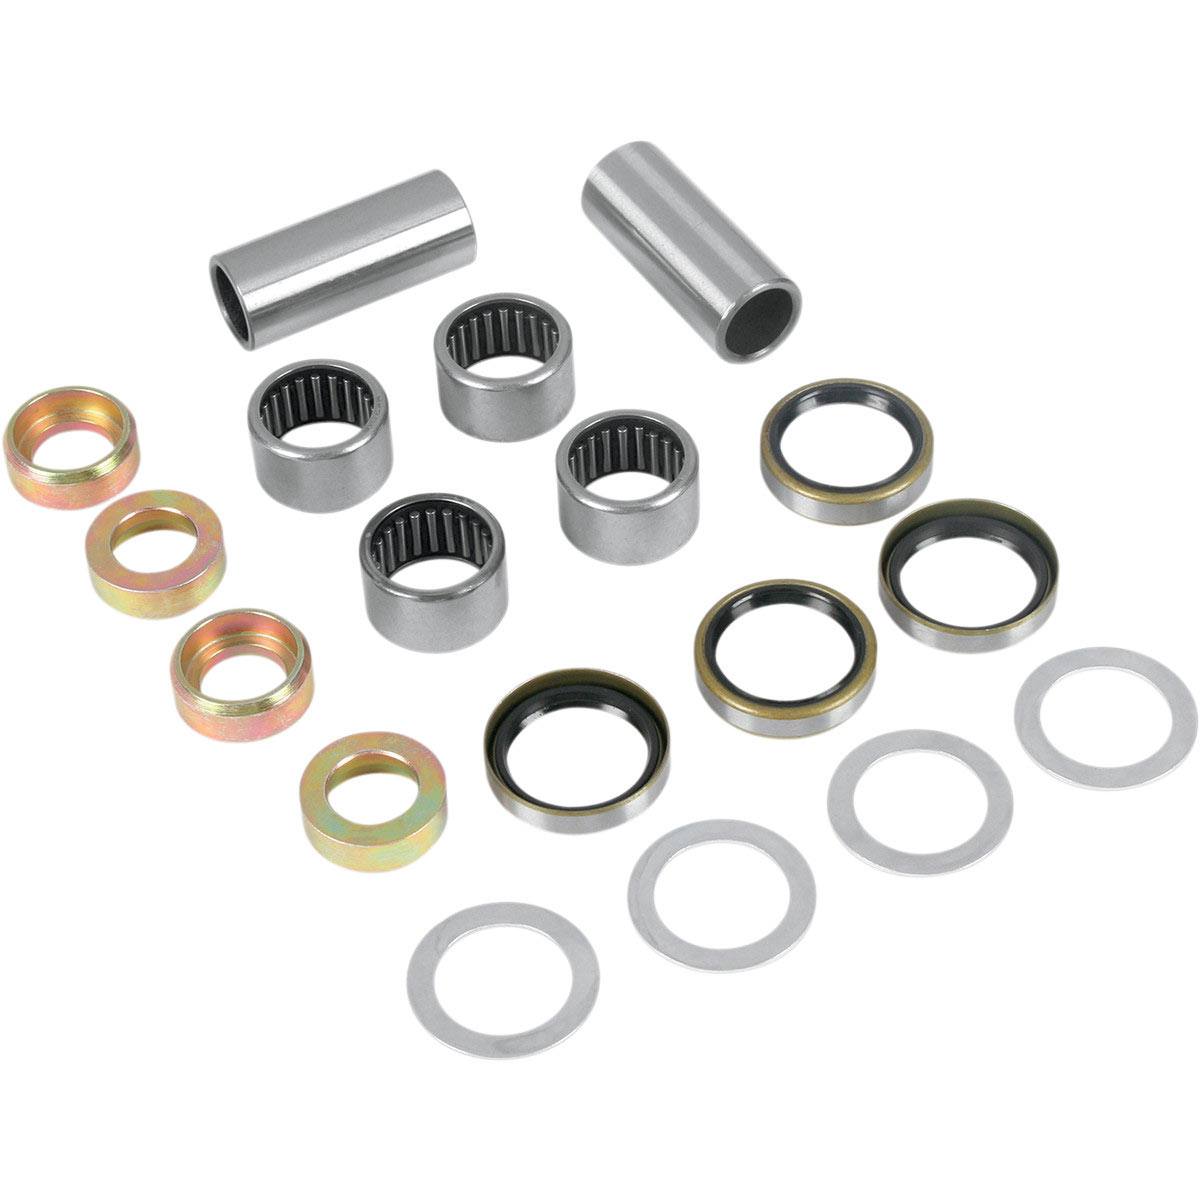 Swing Arm Bearing Kit KTM EXC SX MXC 2000 2001 2002 2003